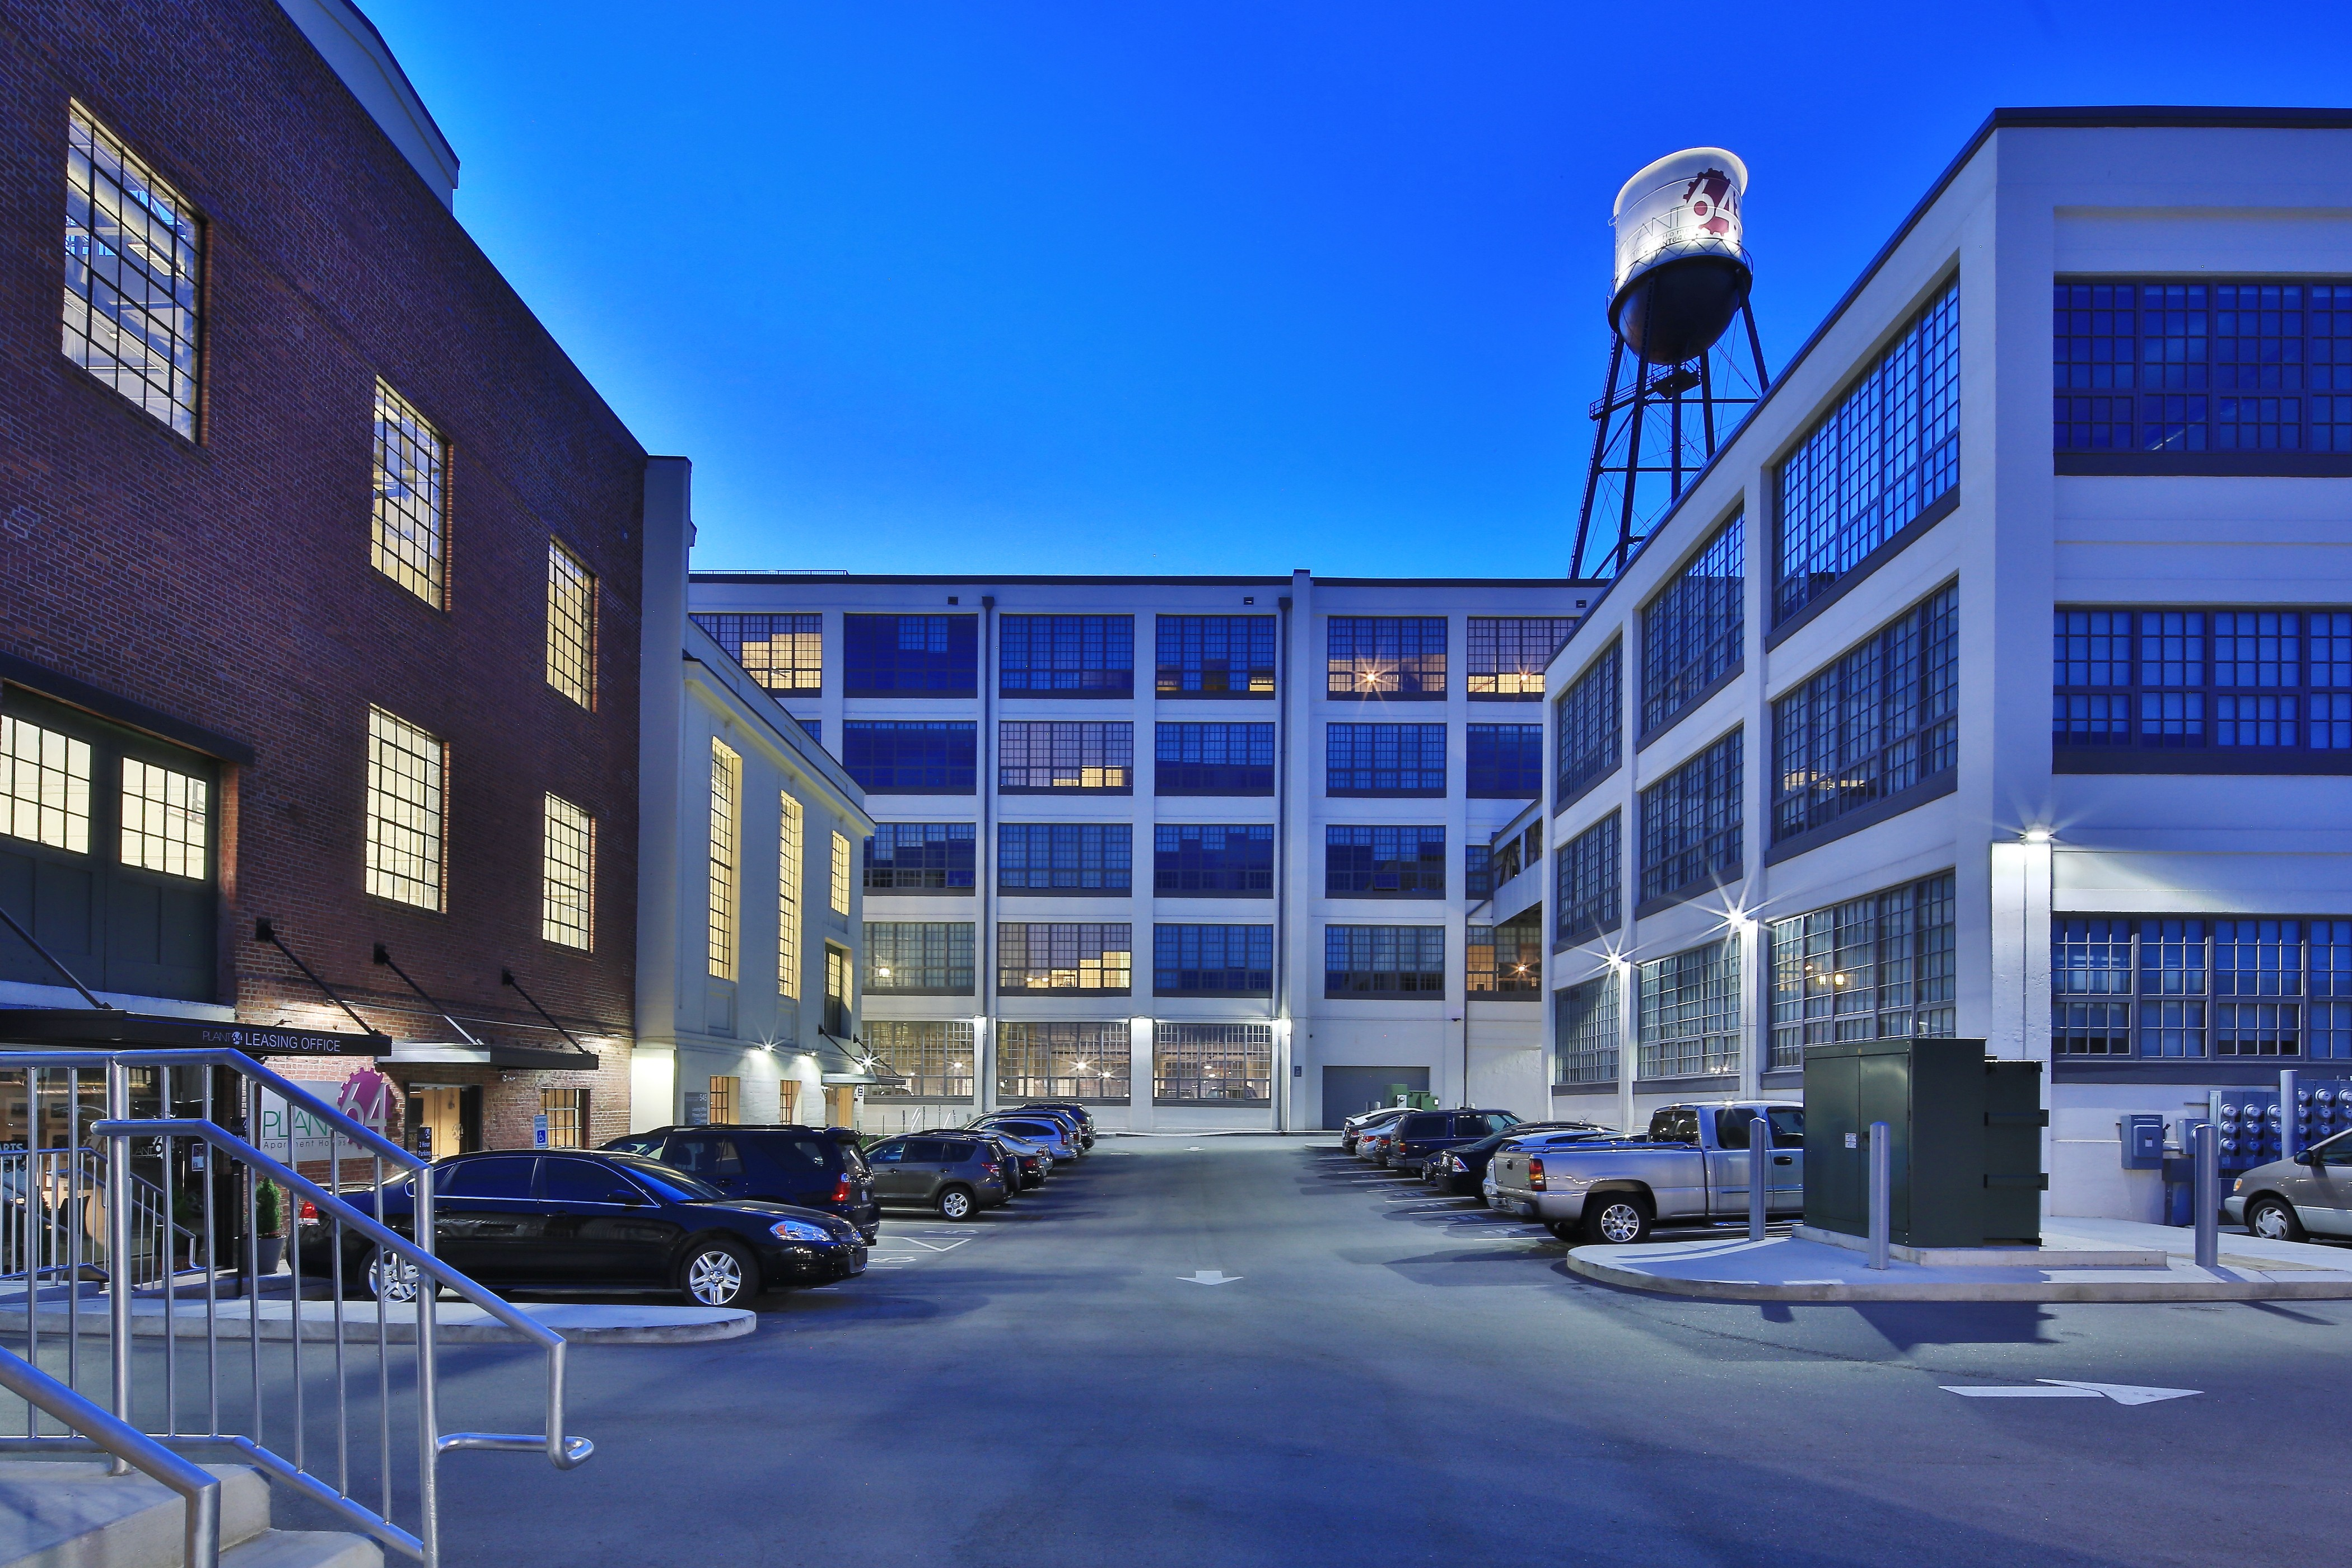 Apartments Near HPU Plant 64 for High Point University Students in High Point, NC